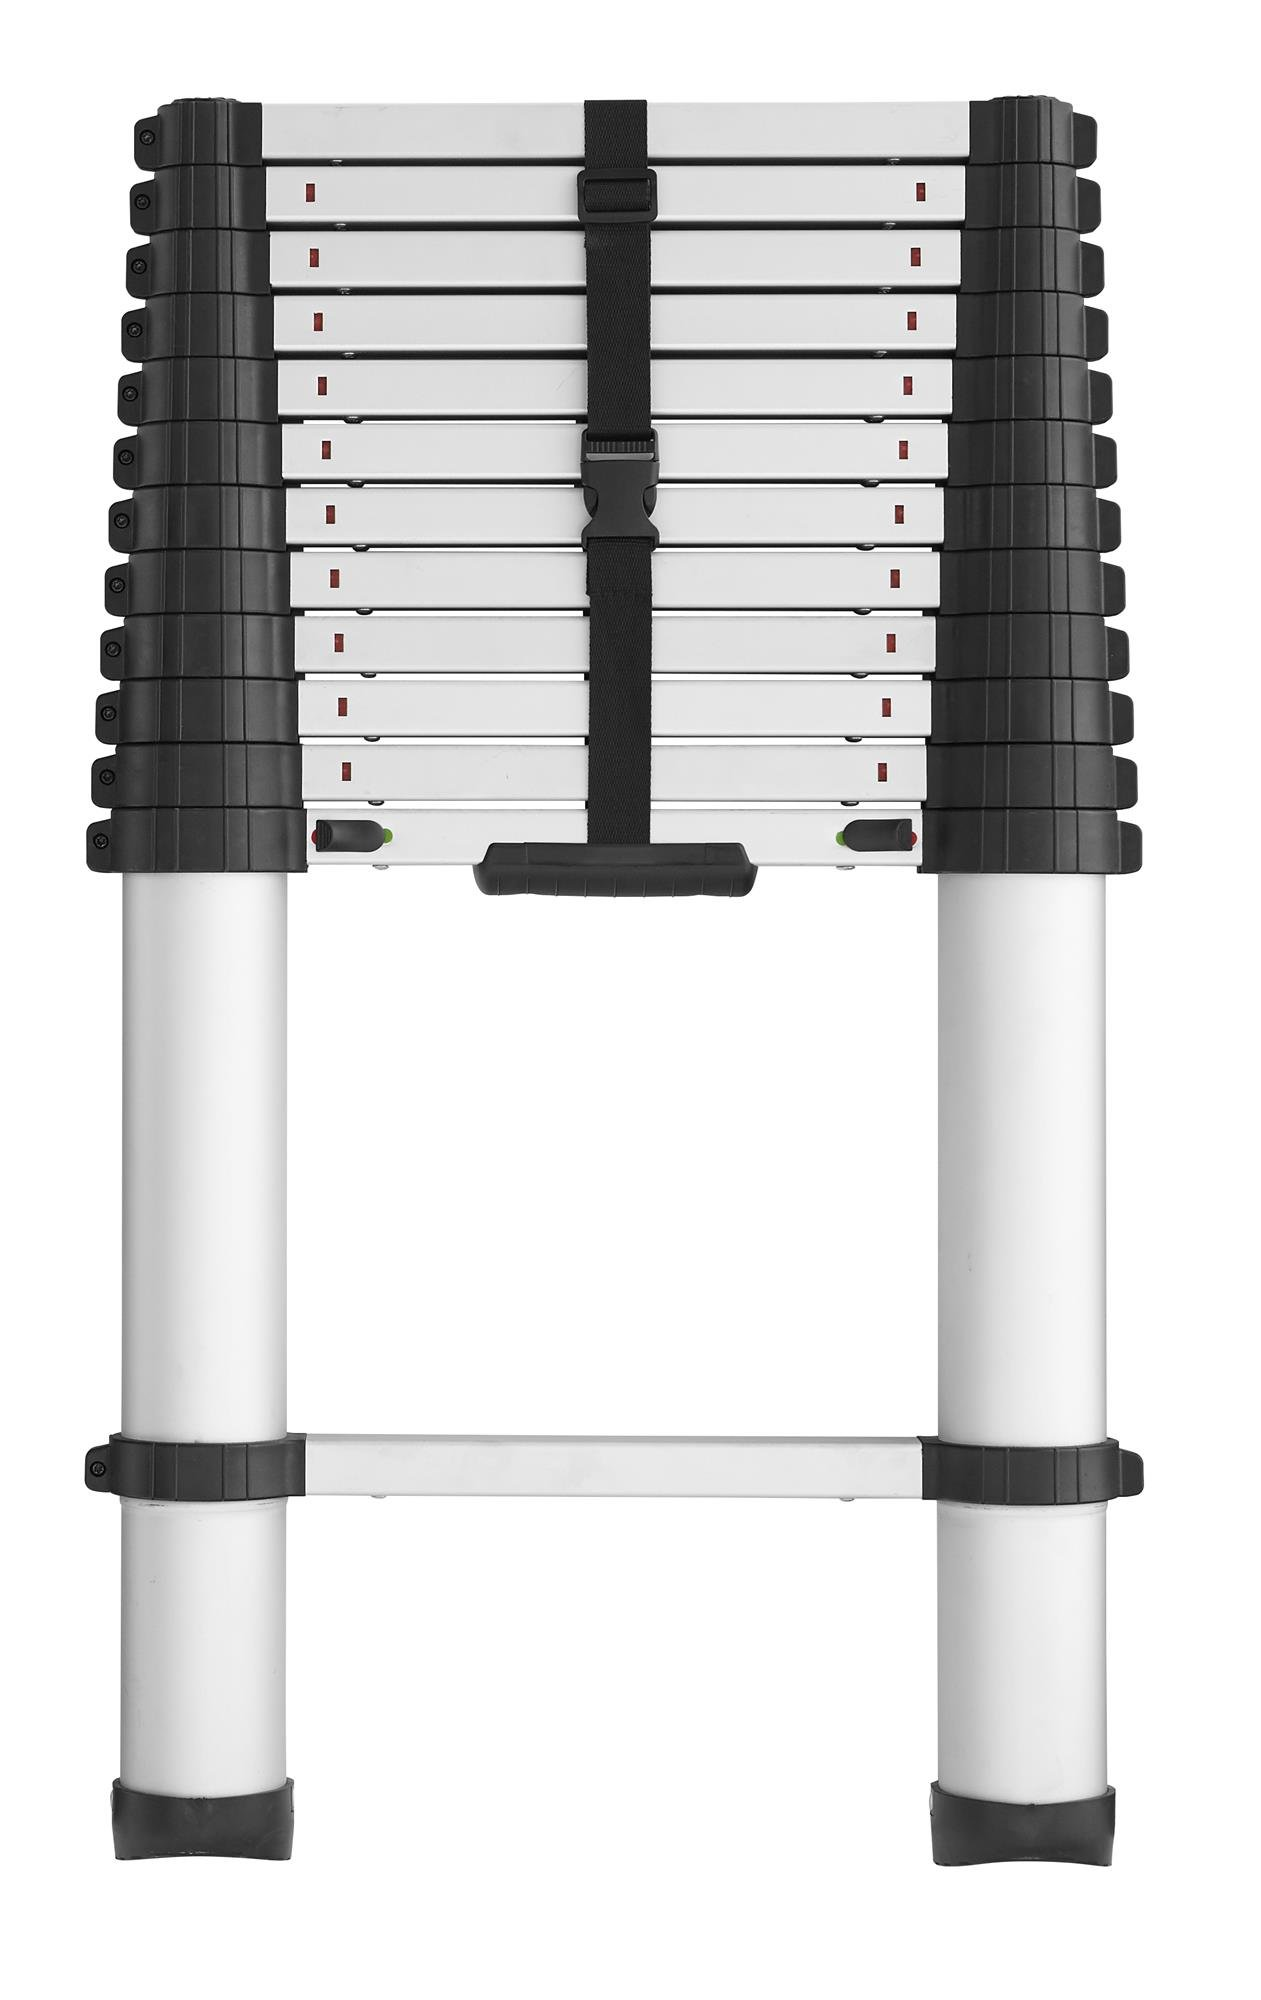 COSCO 20313T1ASE SmartClose Telescoping Aluminum Ladder with Pinch-Free, Soft-Close Locking Mechanism (300-Pound Capacity, 12.5 ft. ladder with 16 ft. Max Reach)